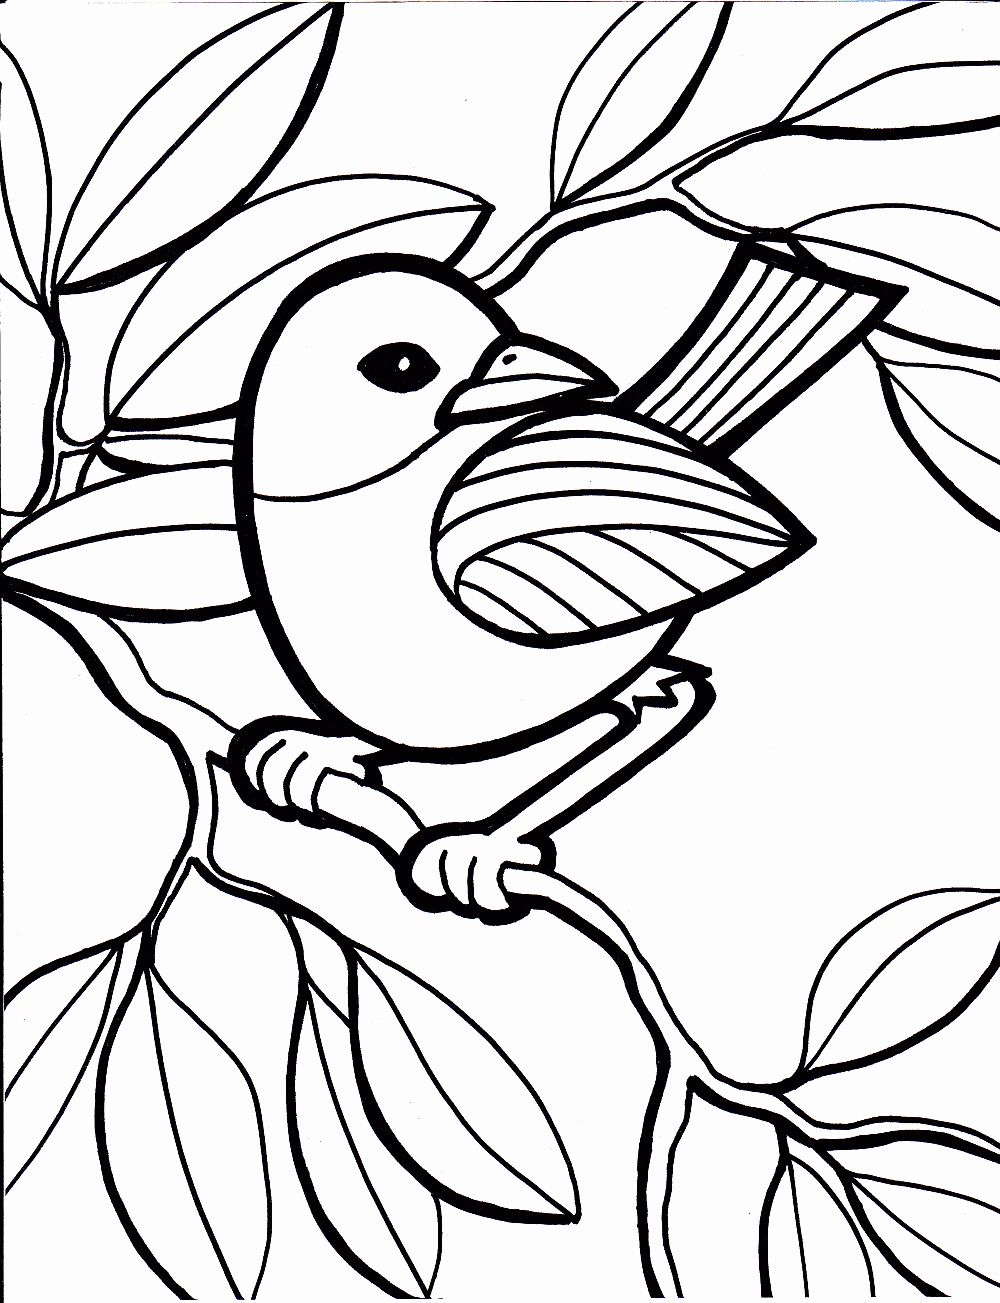 24 Coloring Books For Boys In 2020 Bird Coloring Pages Coloring Pages Free Printable Coloring Sheets